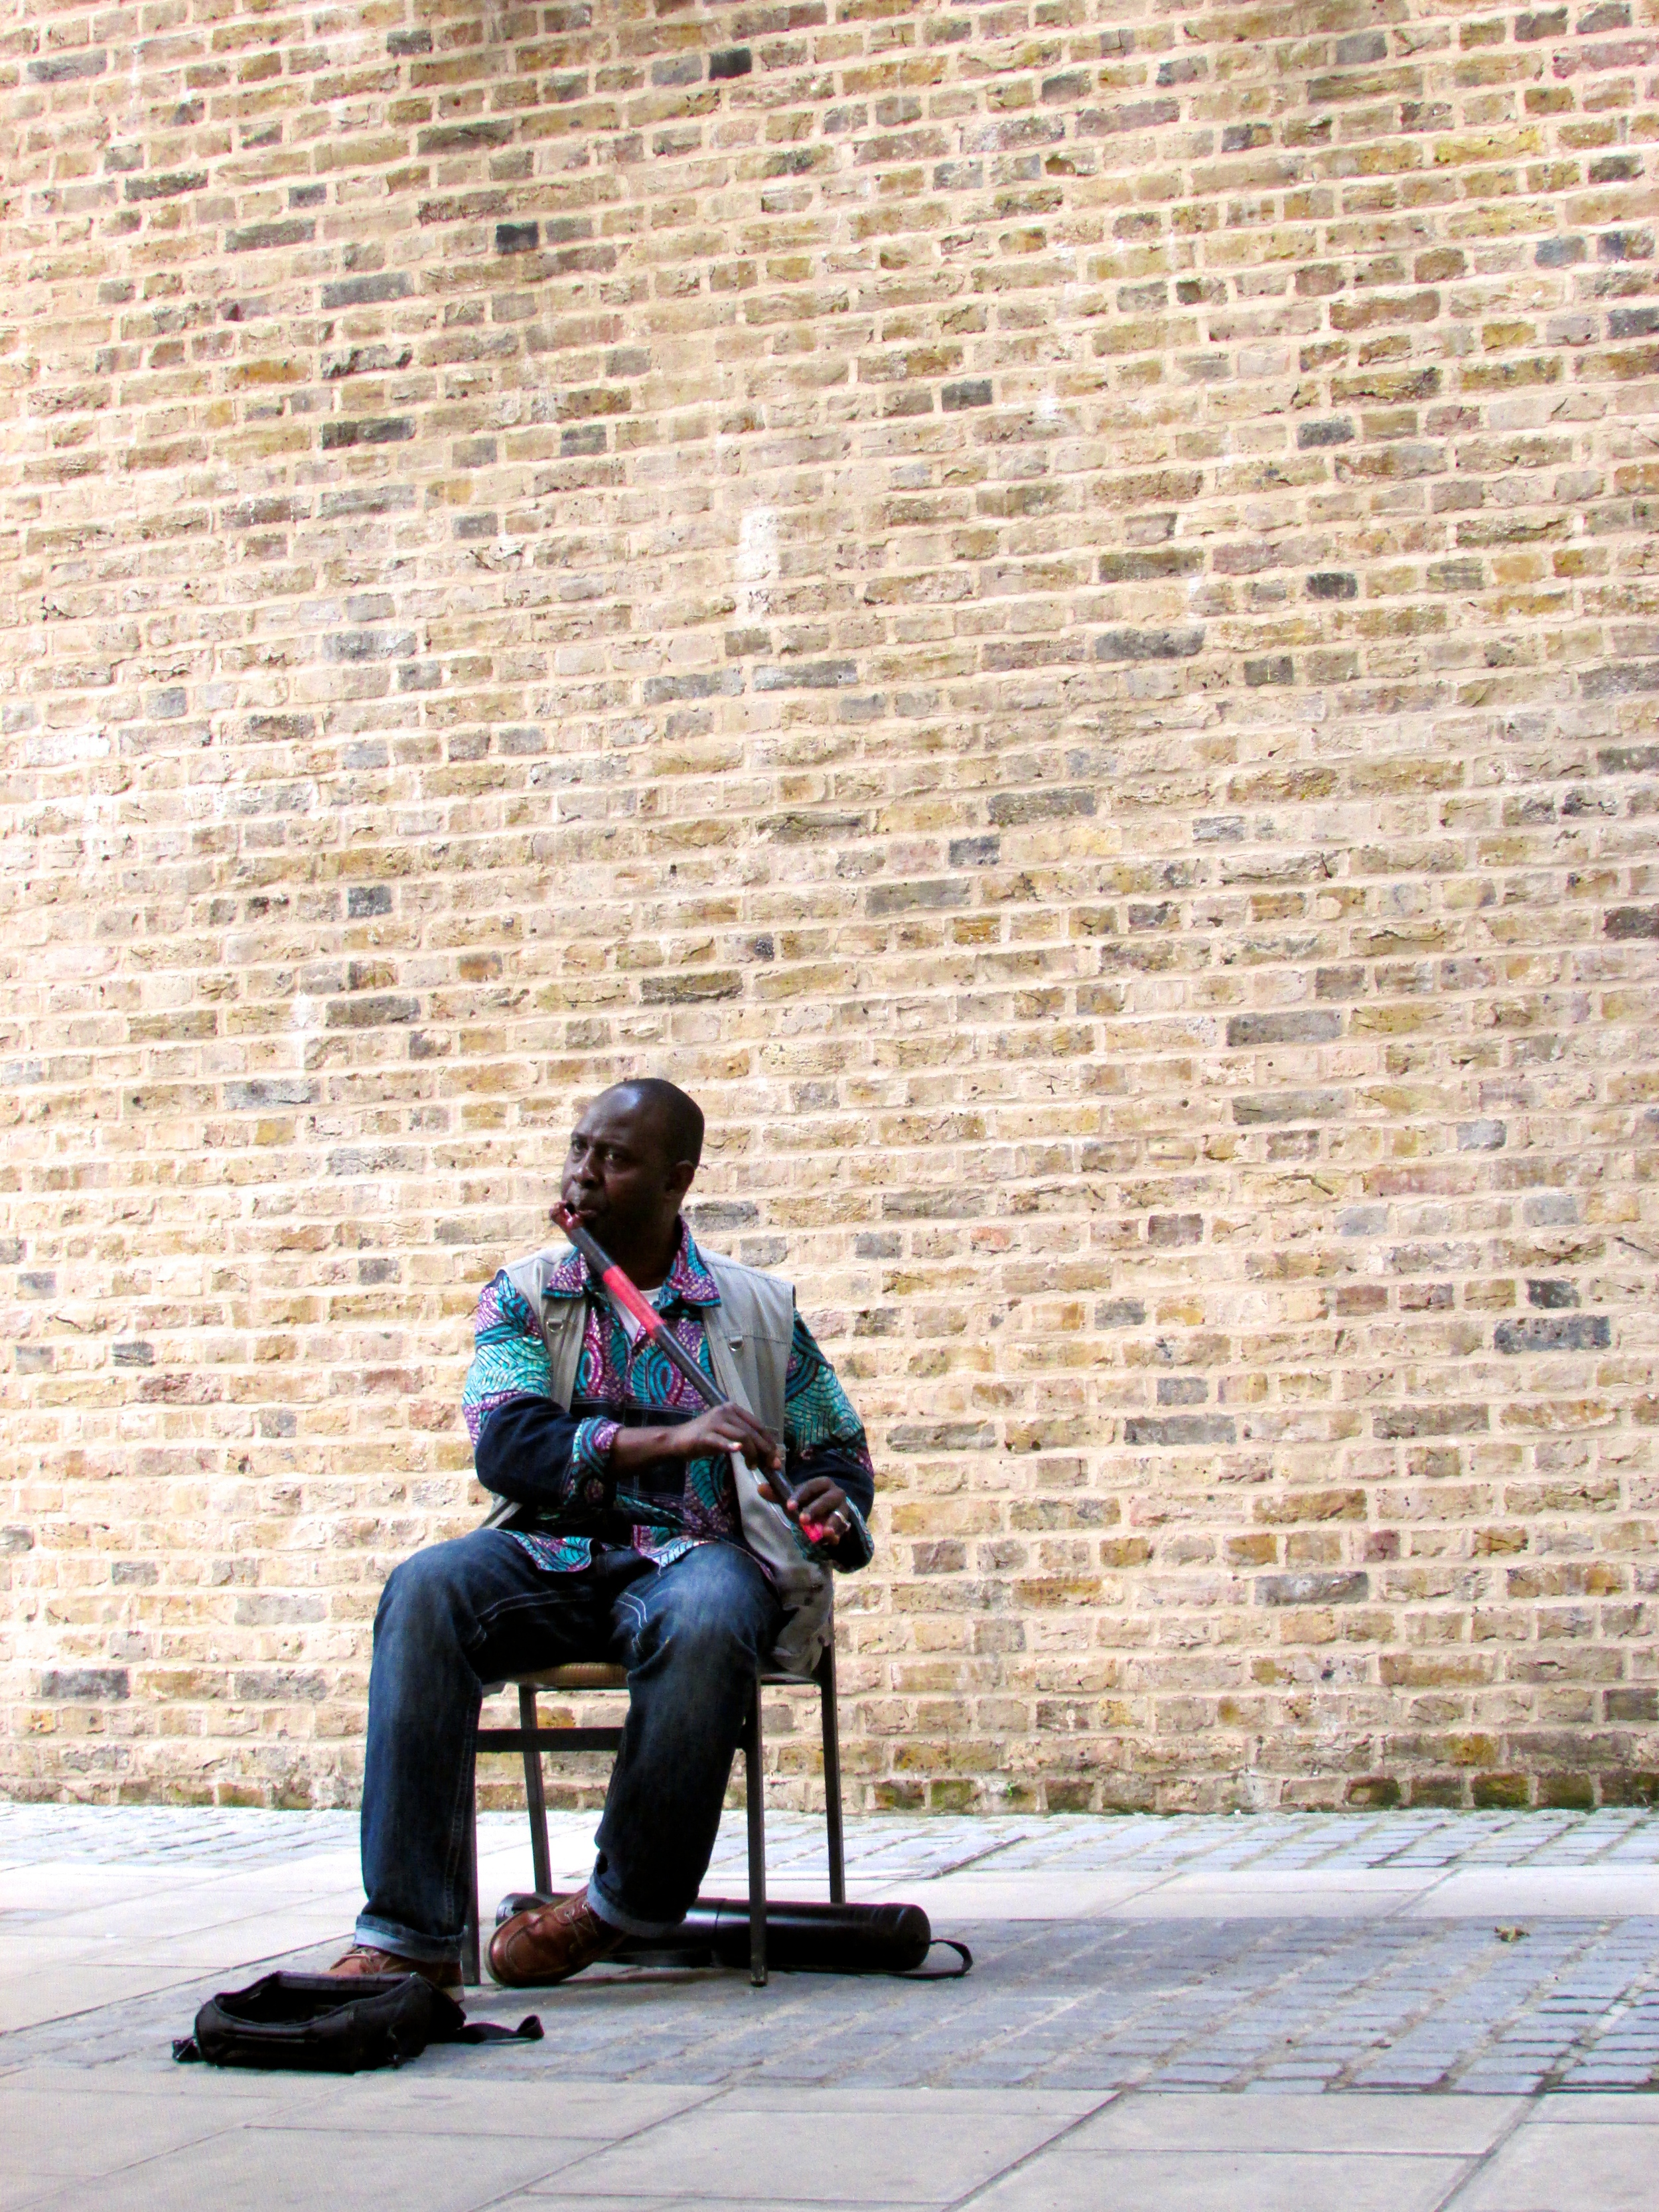 Musician on the south side of the river in London, England